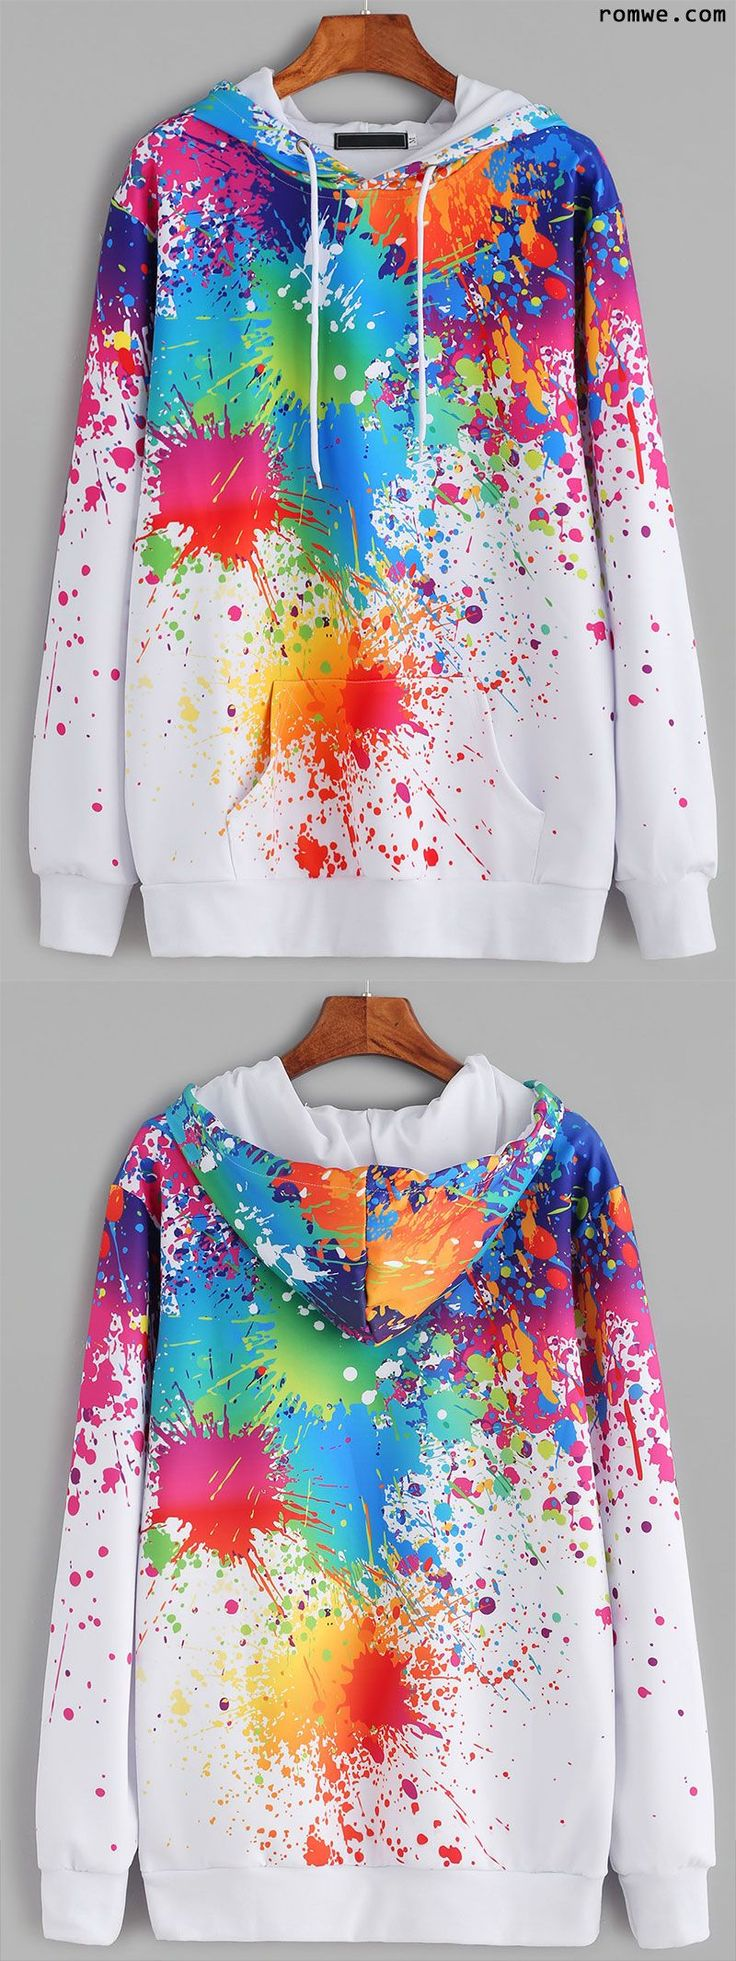 Best 25 paint splatter ideas on pinterest splatter for Paint on clothes